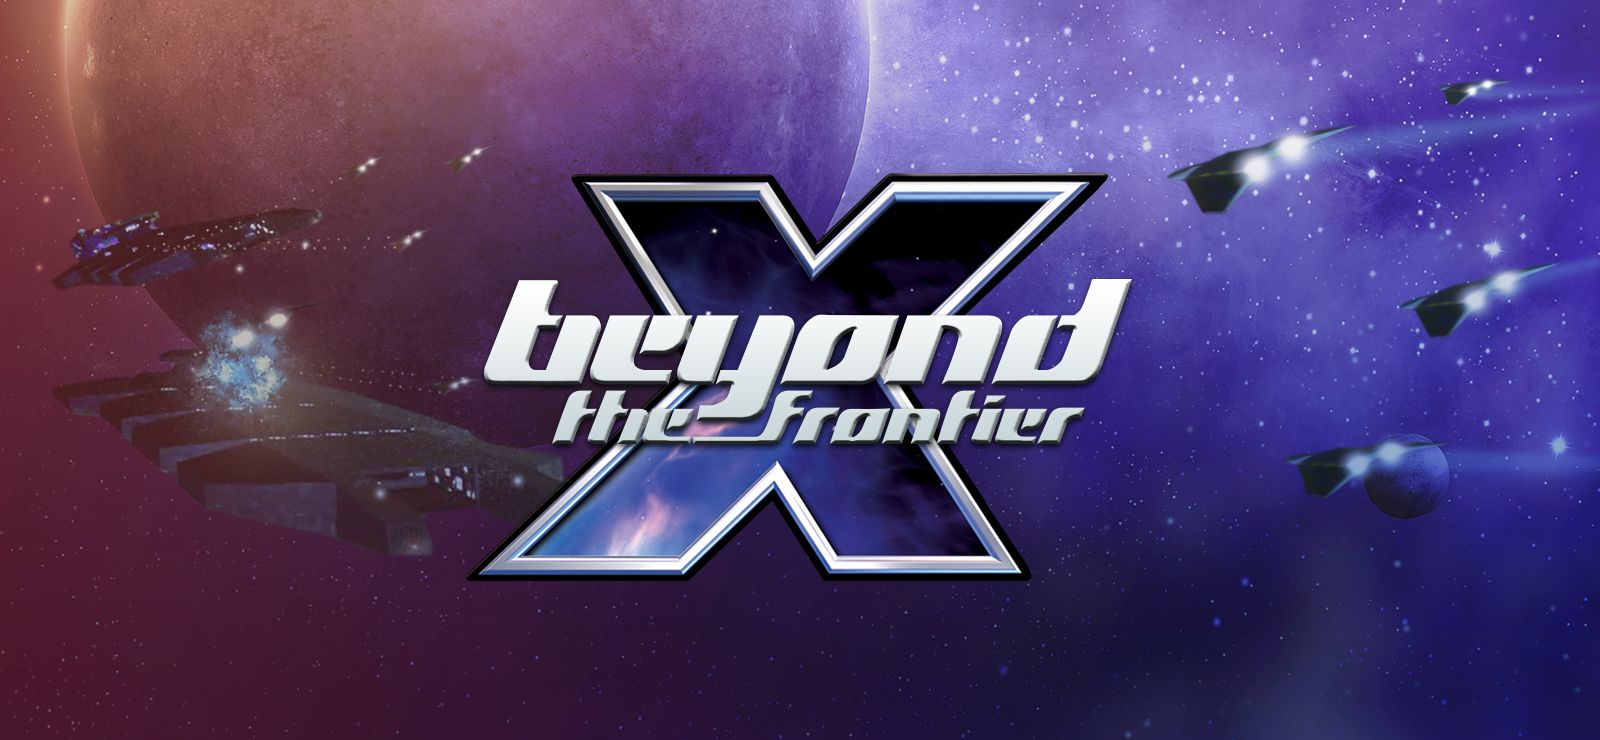 Download X Beyond the Frontier Full Version - Ronan Elektron